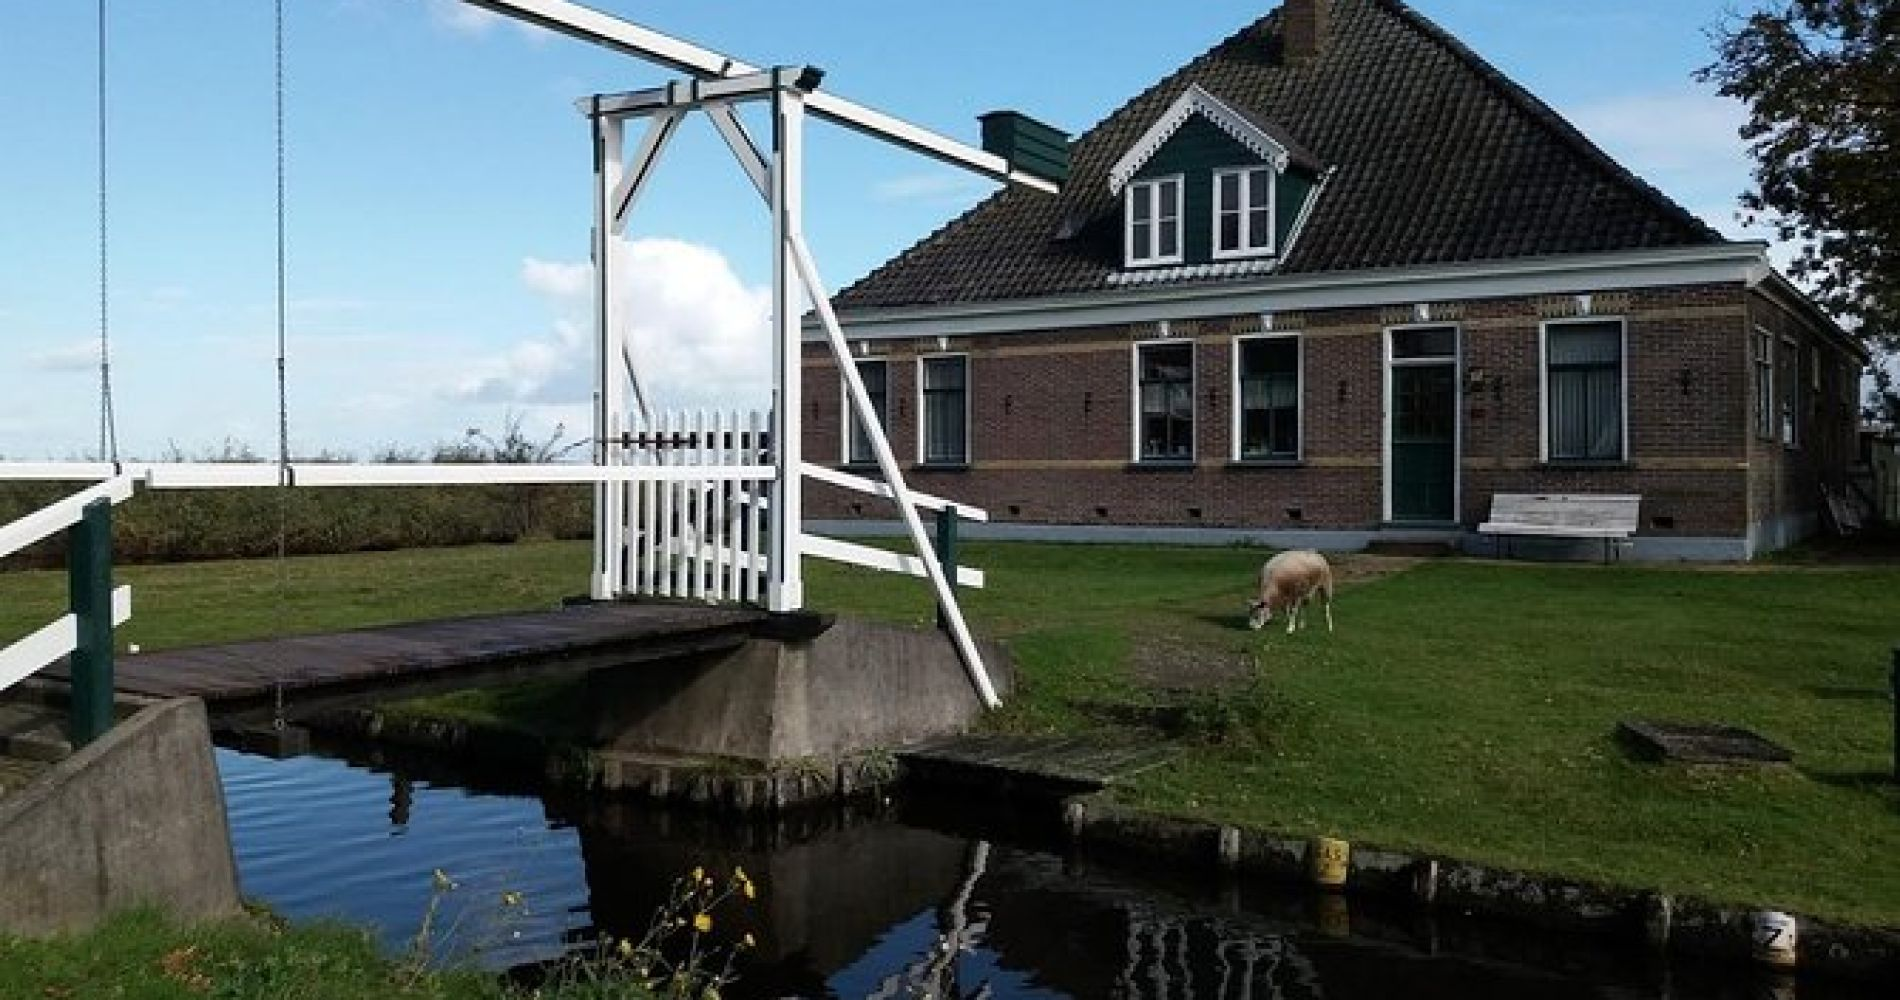 Netherlands Waterland Canoe Tour with Dinner from Amsterdam